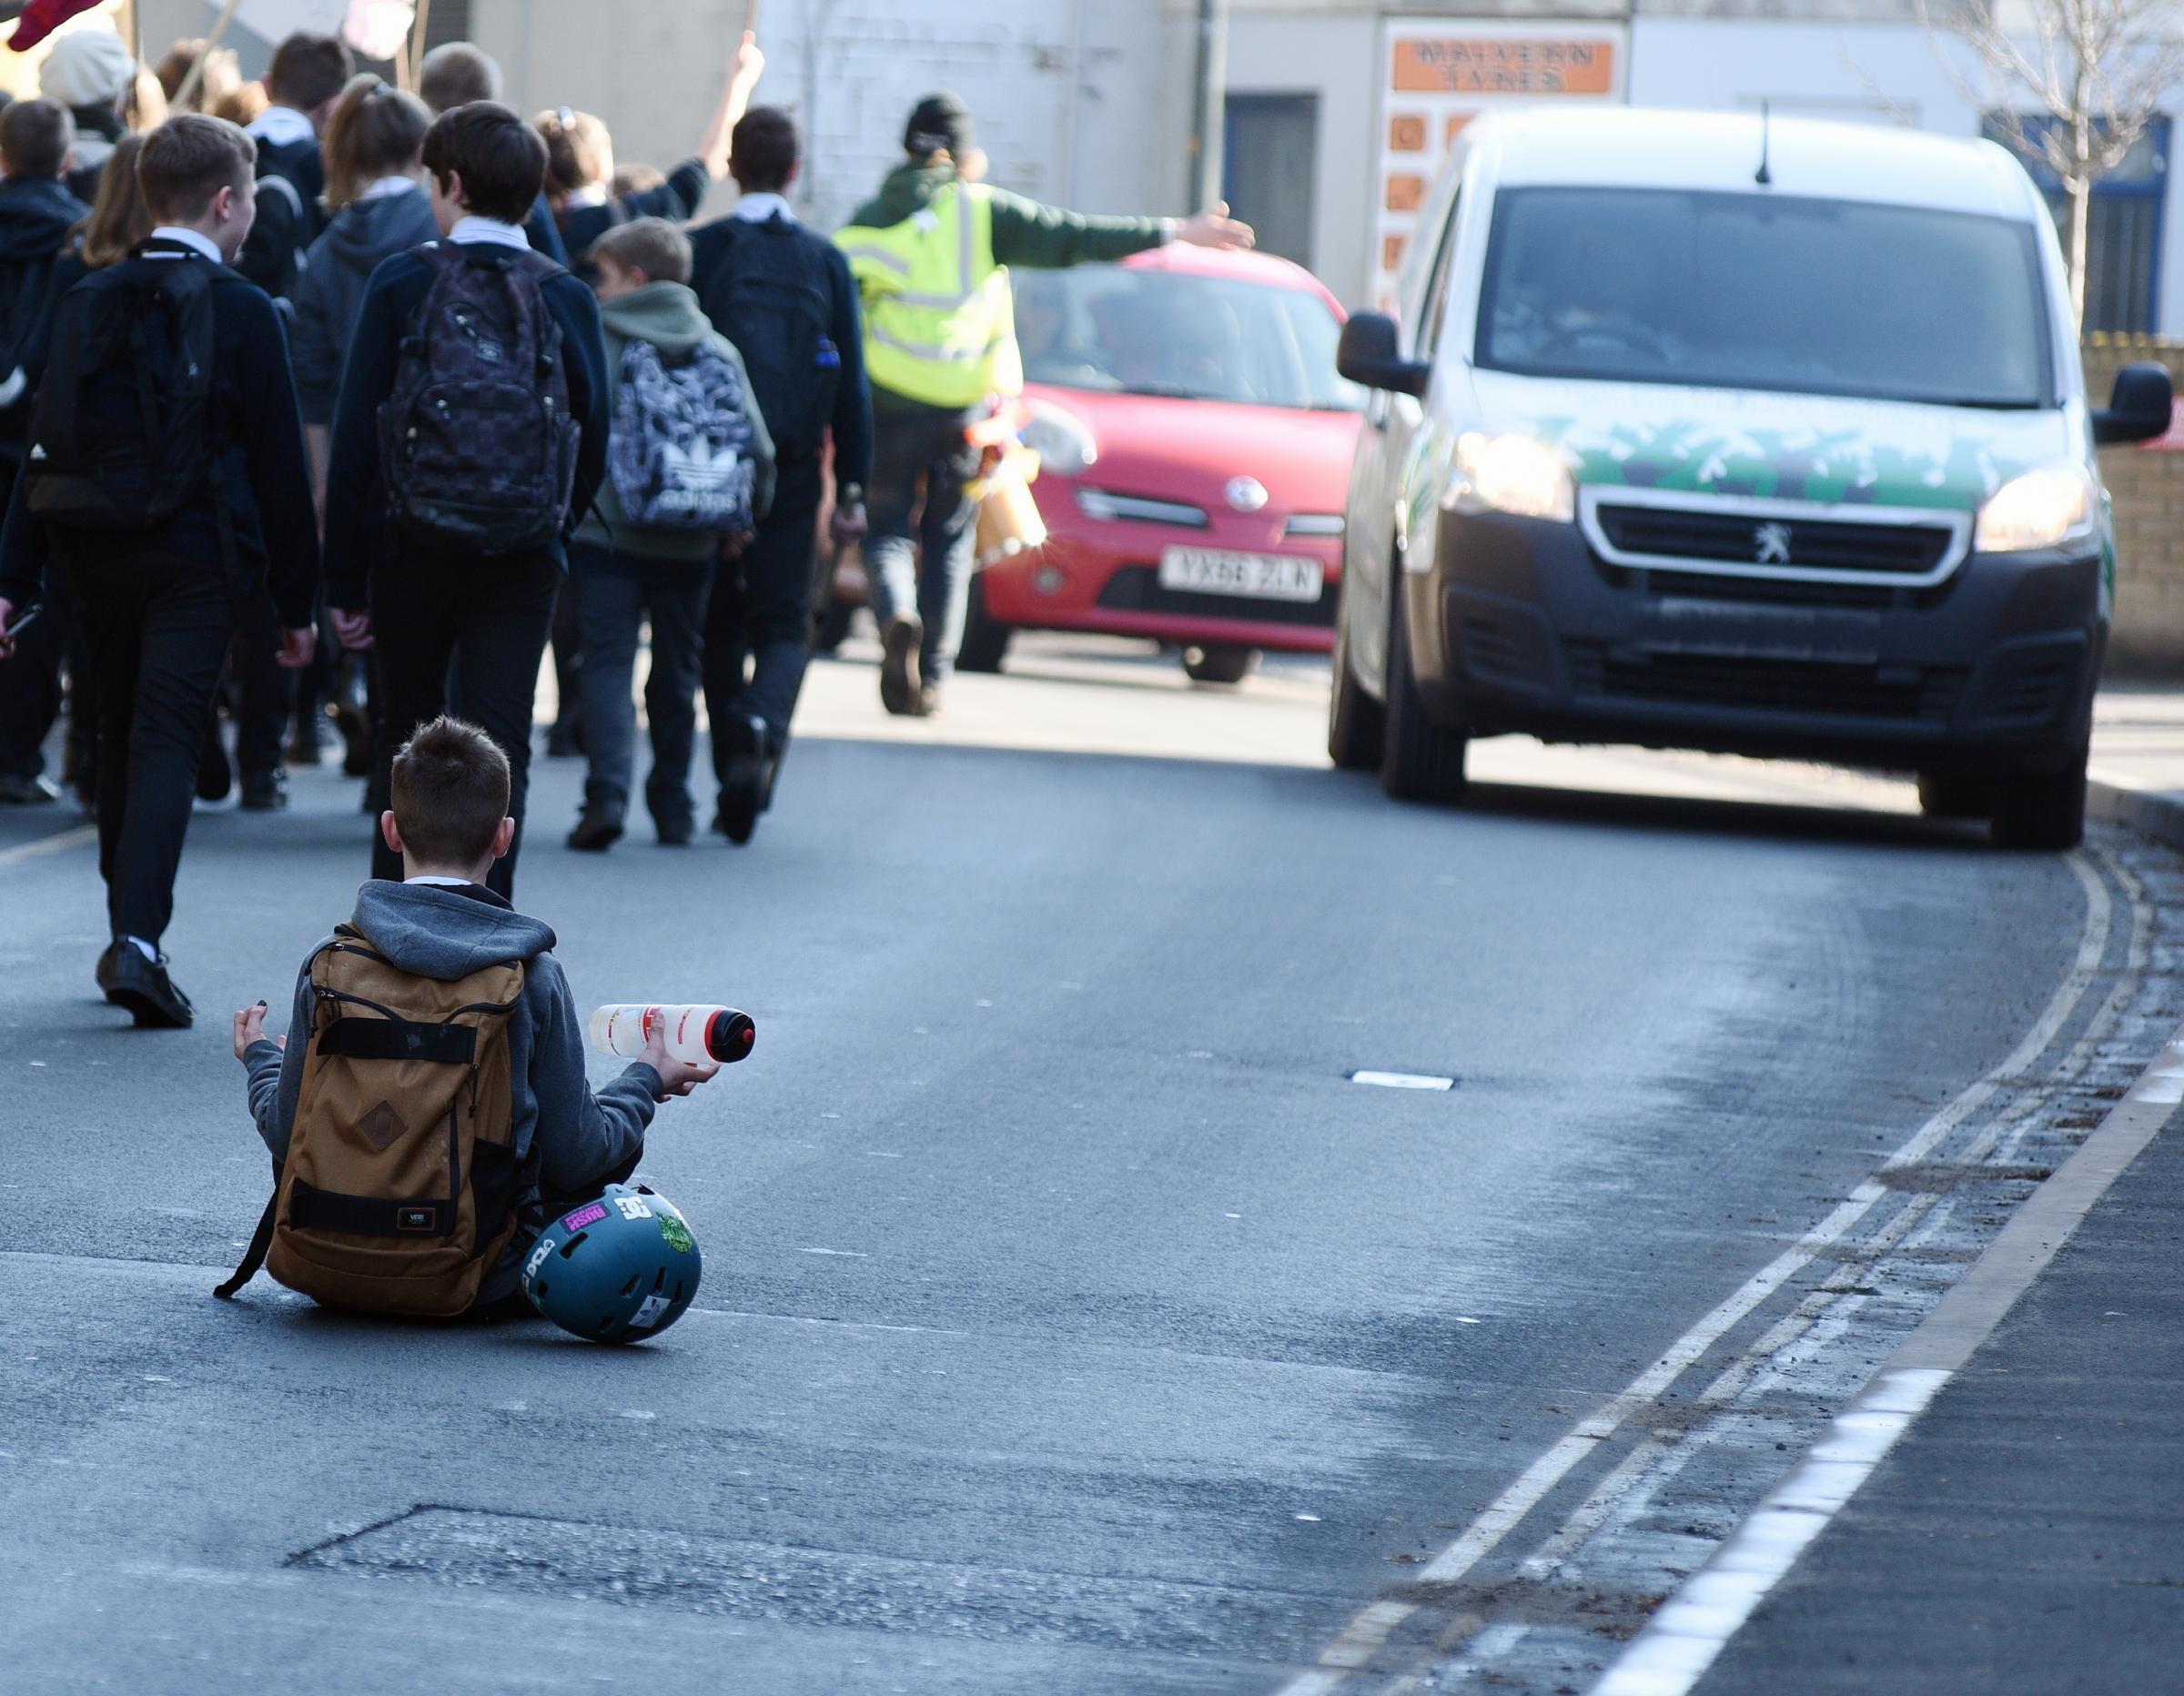 For a few fleeting moments this young boy sat in the road as traffic drove carefully past the protesters